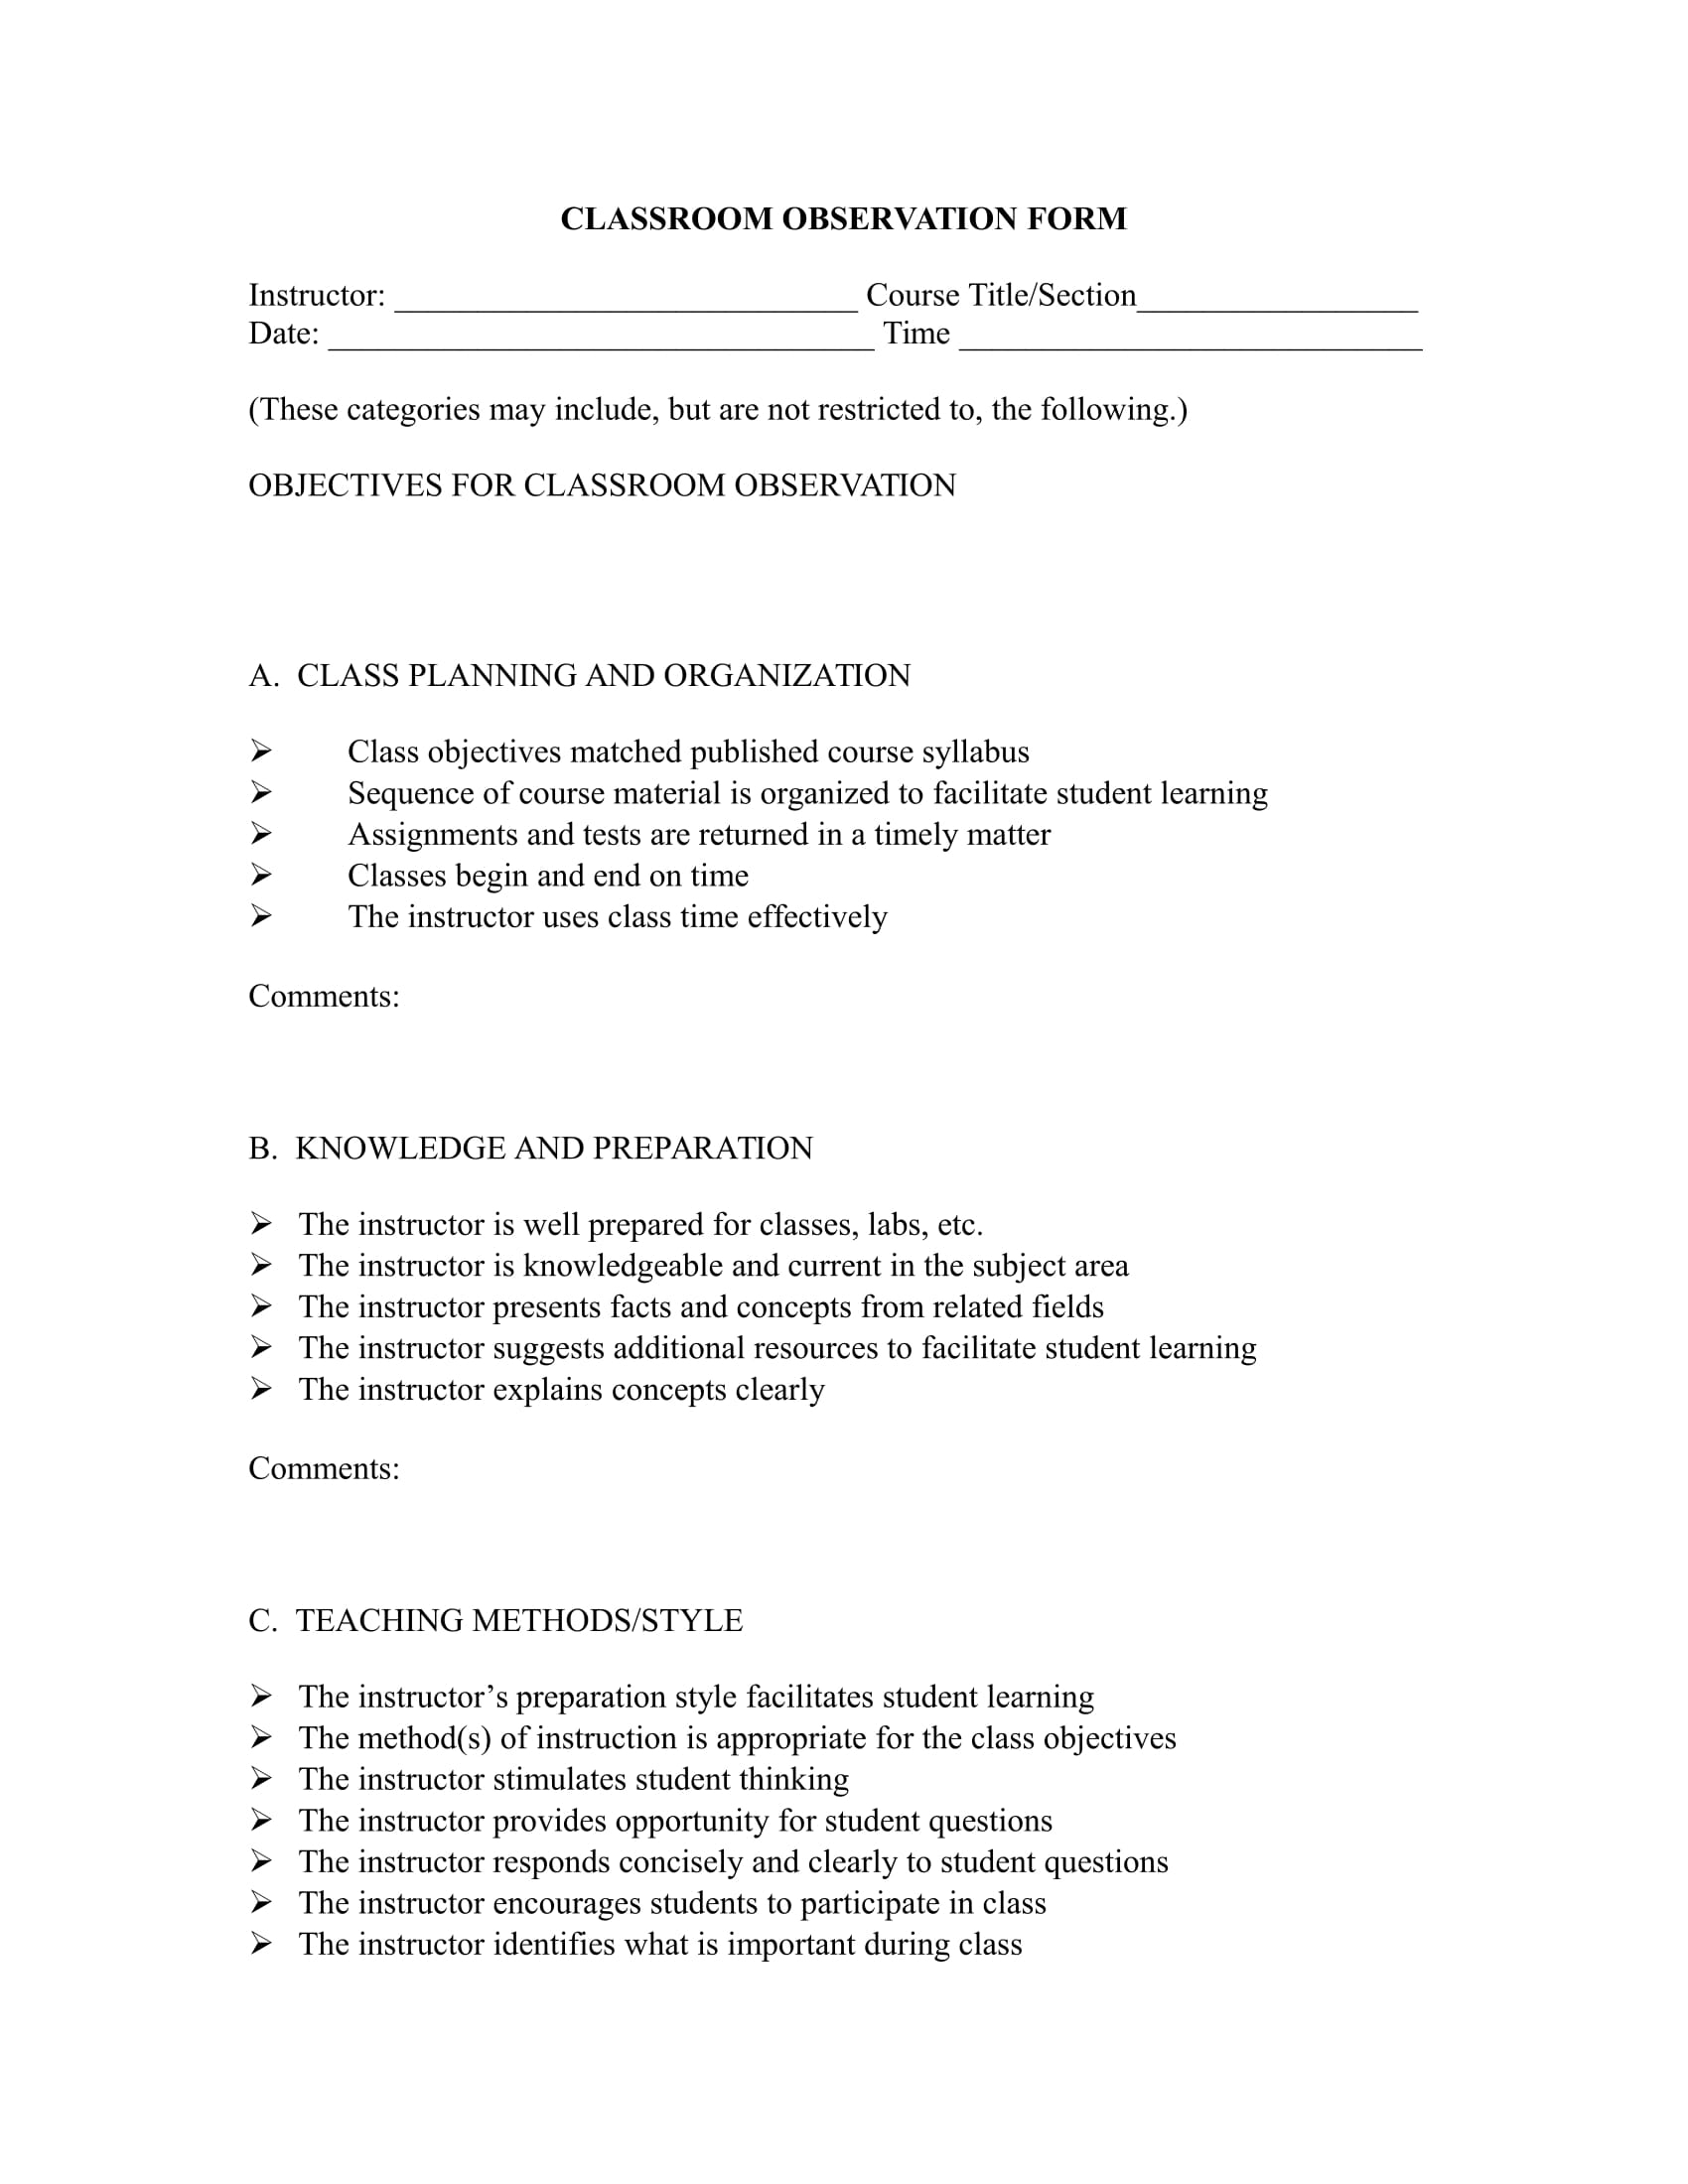 classroom observation form in doc 1